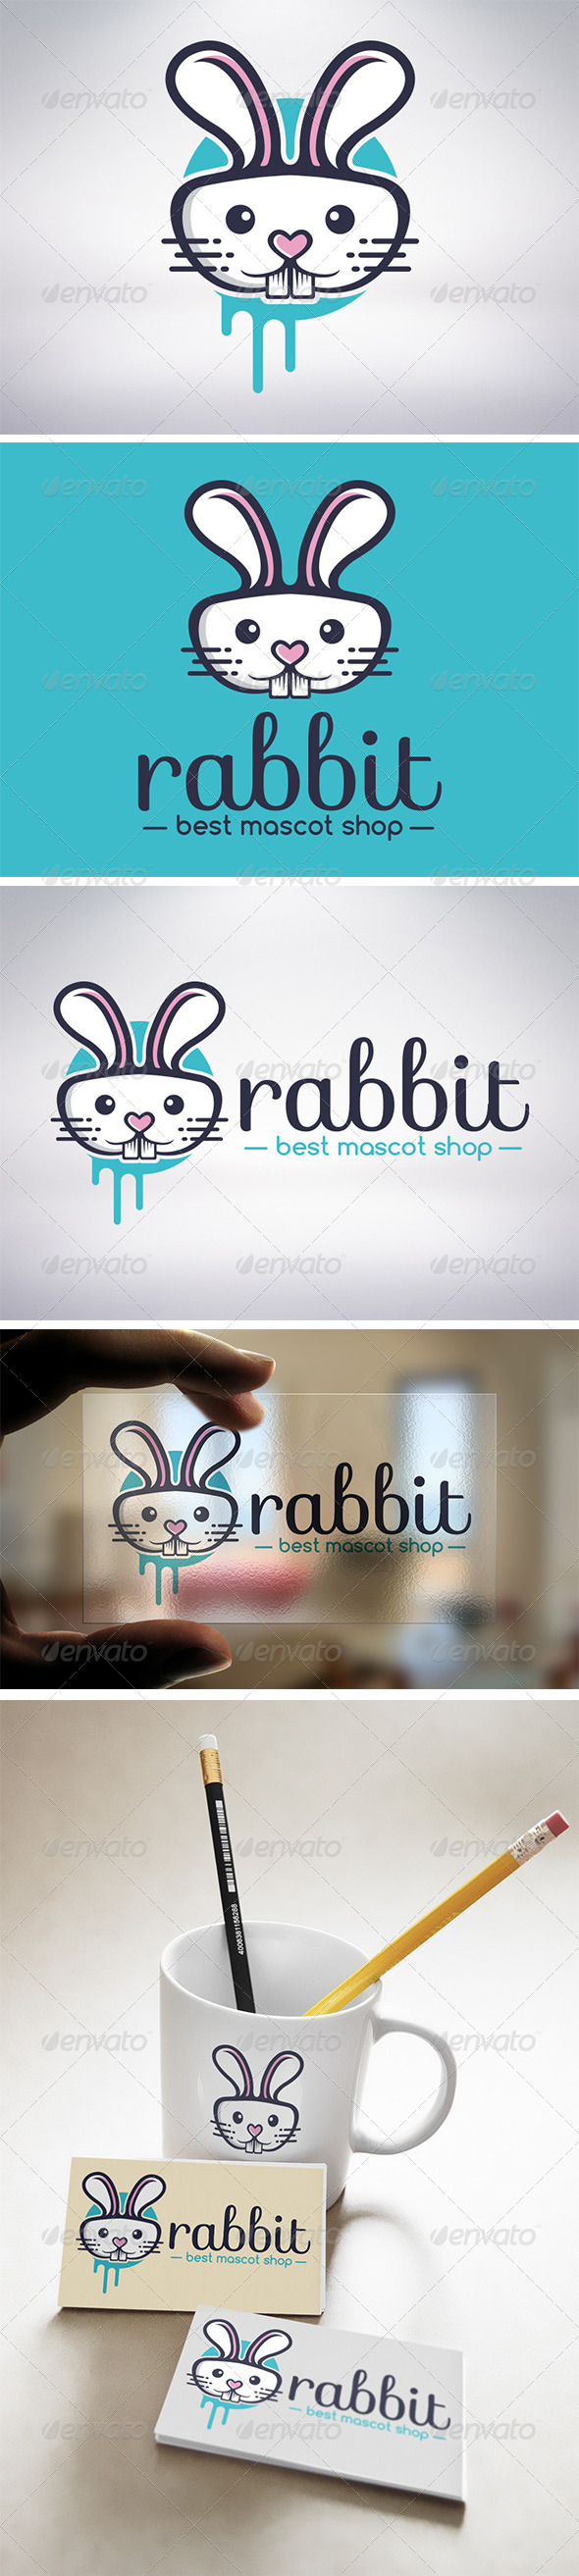 Rabbit Logo - Animals Logo Templates